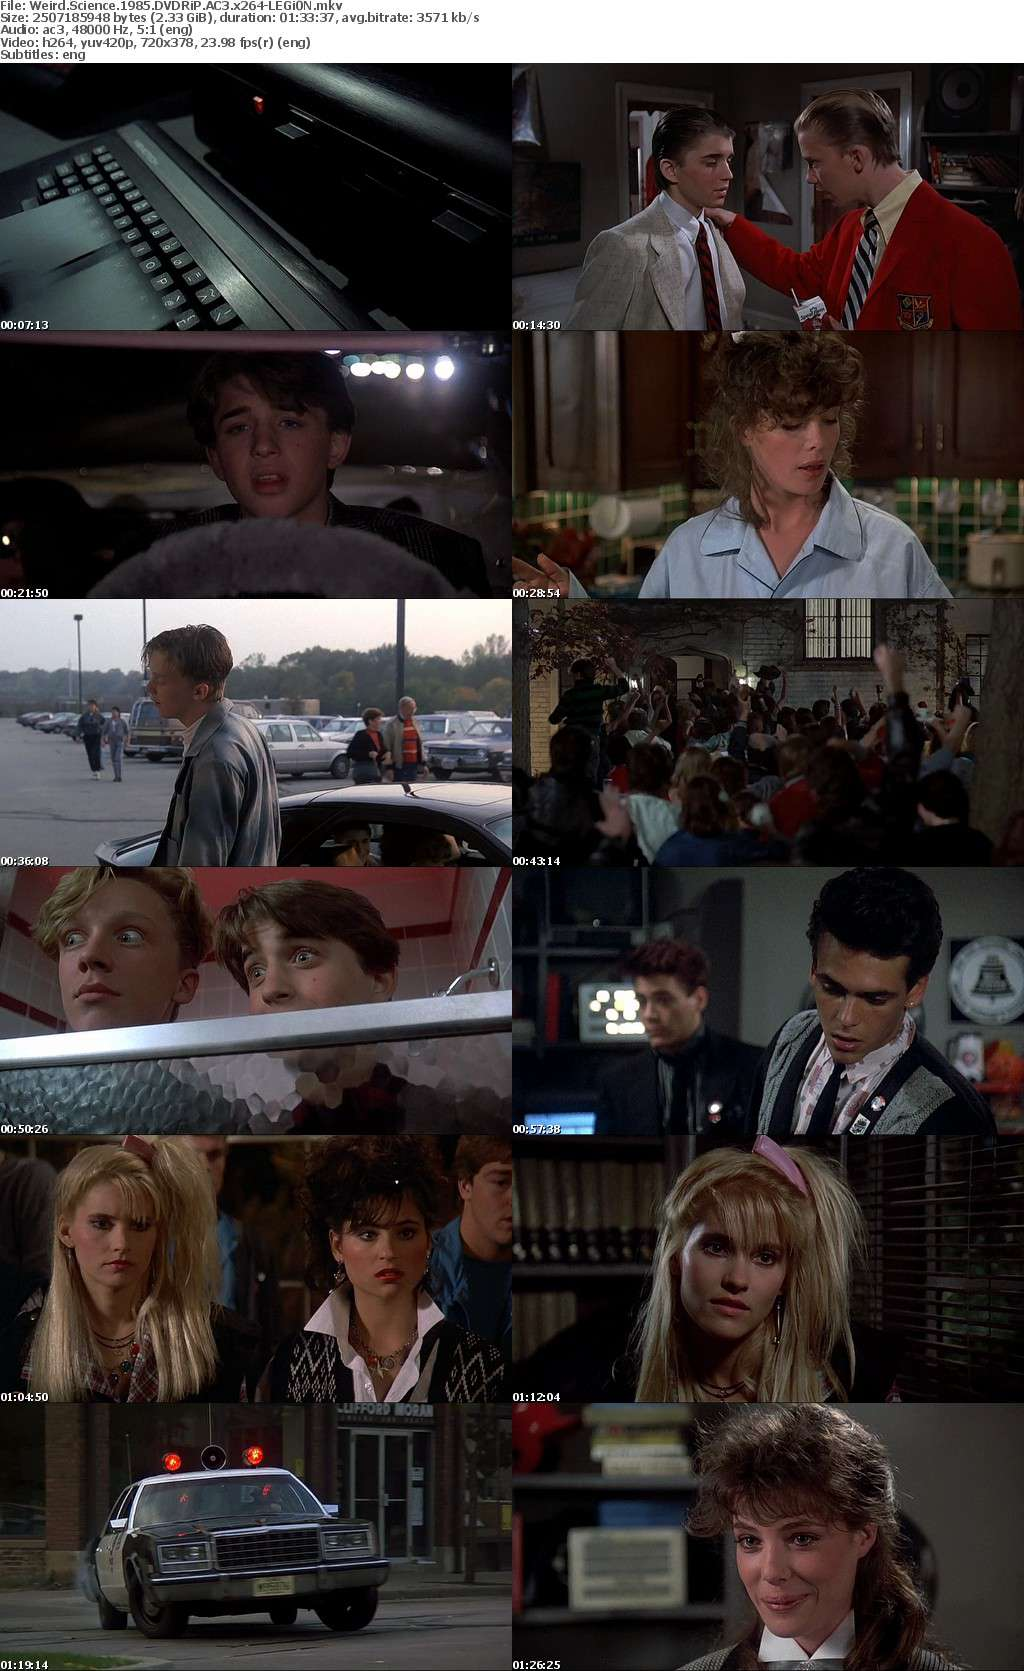 Weird Science 1985 DVDRiP AC3 x264 LEGi0N